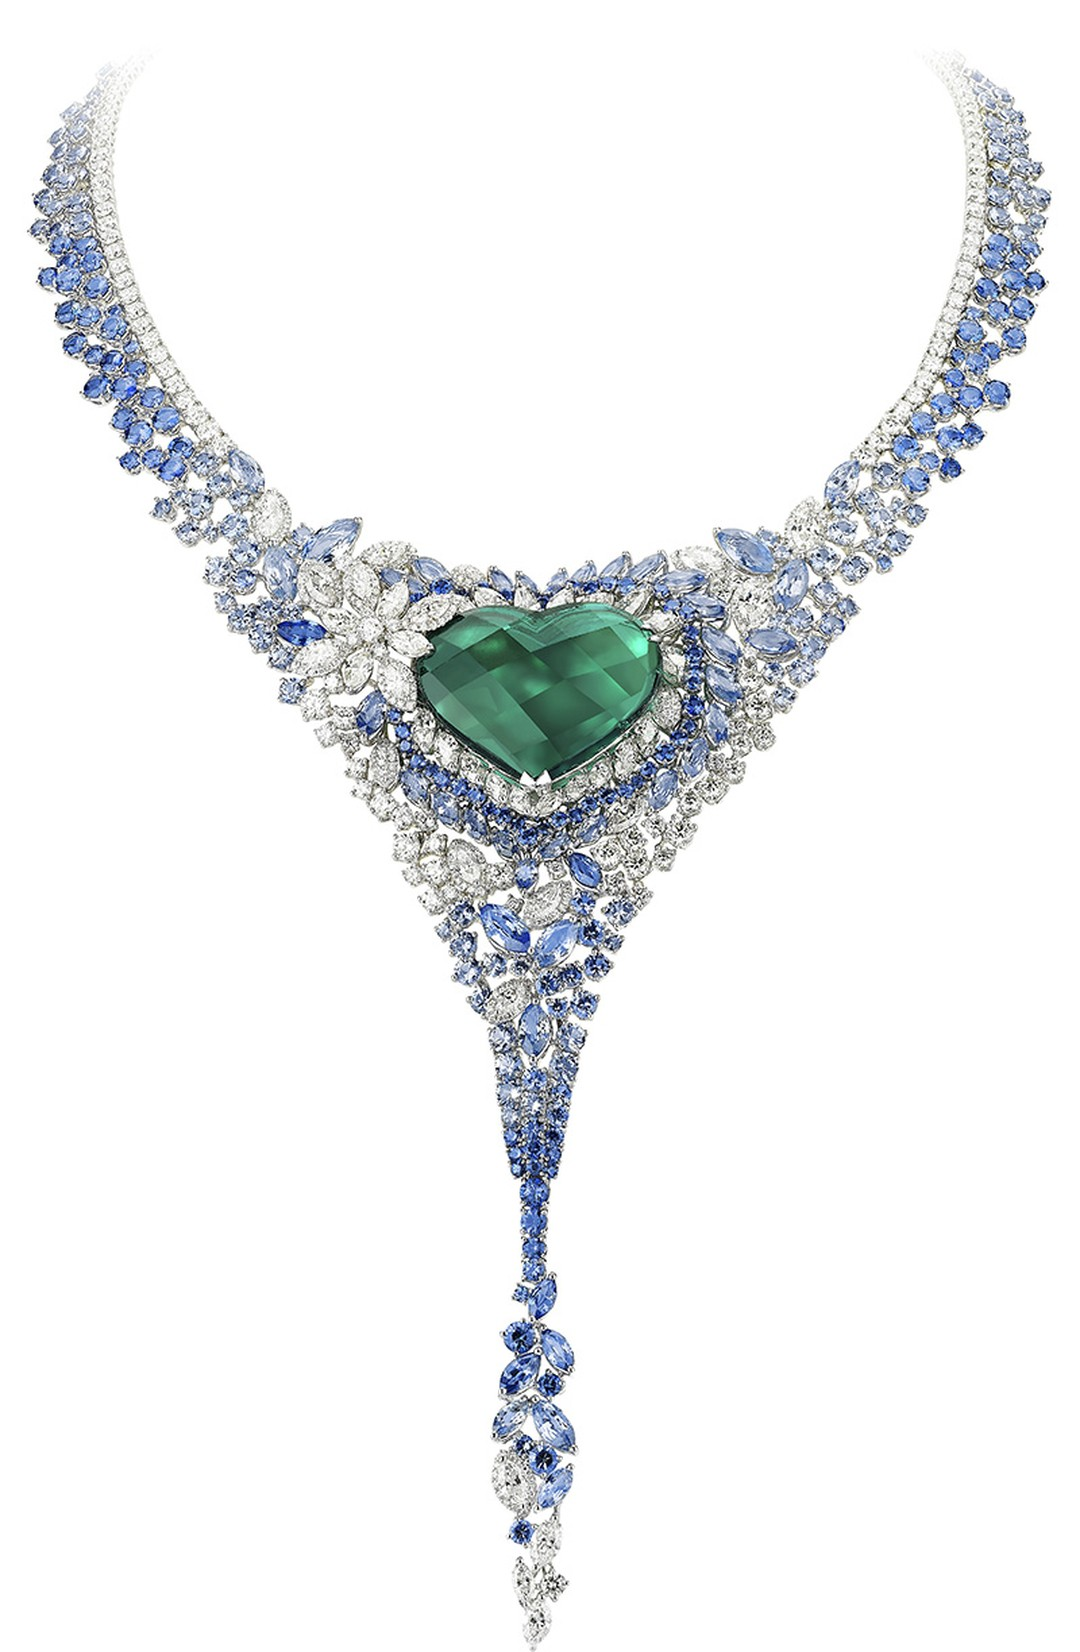 01-Avakian-Heart-shape-emerald-and-sapphire-necklace.jpg